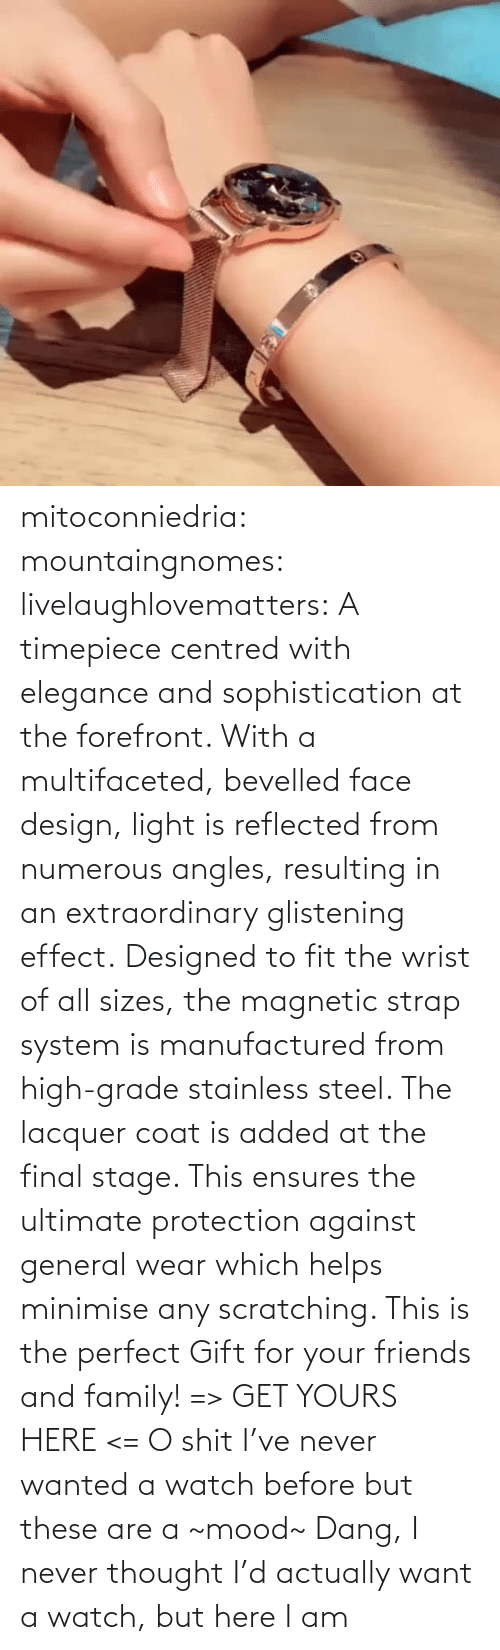 I Never: mitoconniedria: mountaingnomes:   livelaughlovematters:  A timepiece centred with elegance and sophistication at the forefront. With a multifaceted, bevelled face design, light is reflected from numerous angles, resulting in an extraordinary glistening effect. Designed to fit the wrist of all sizes, the magnetic strap system is manufactured from high-grade stainless steel. The lacquer coat is added at the final stage. This ensures the ultimate protection against general wear which helps minimise any scratching. This is the perfect Gift for your friends and family! => GET YOURS HERE <=  O shit I've never wanted a watch before but these are a ~mood~    Dang, I never thought I'd actually want a watch, but here I am